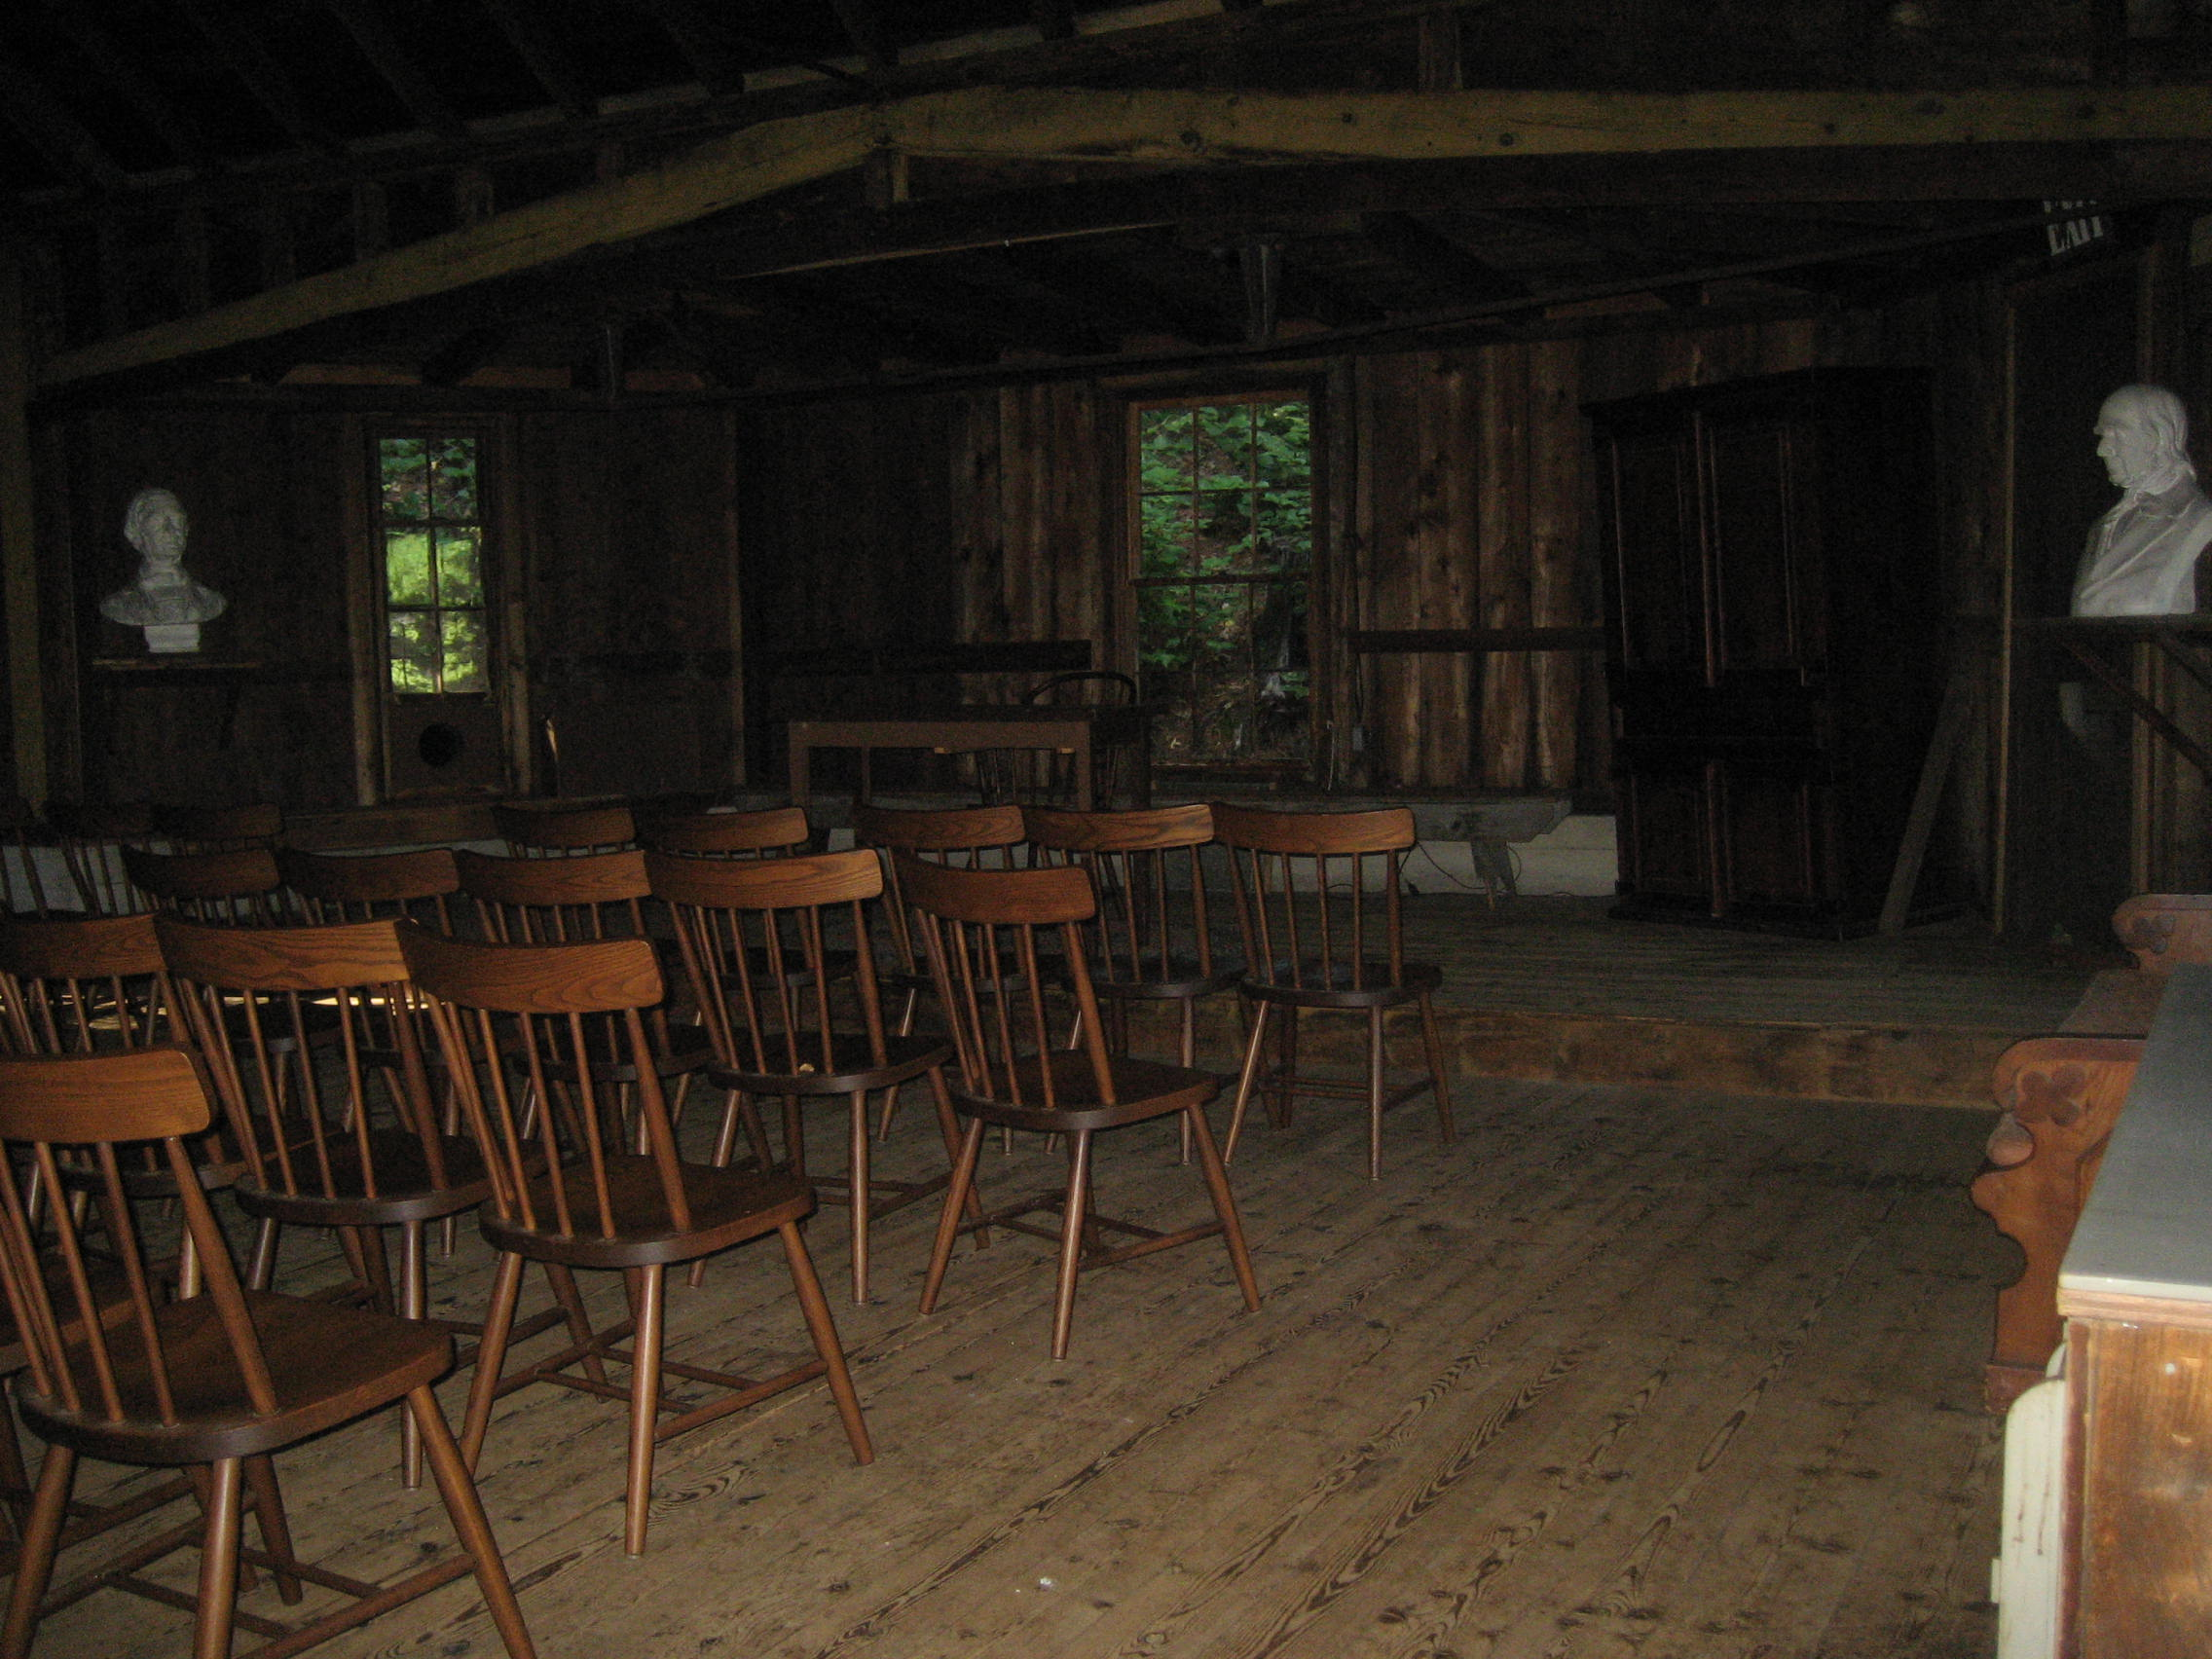 photo of a nineteenth century classrooms with wooden chairs in rows